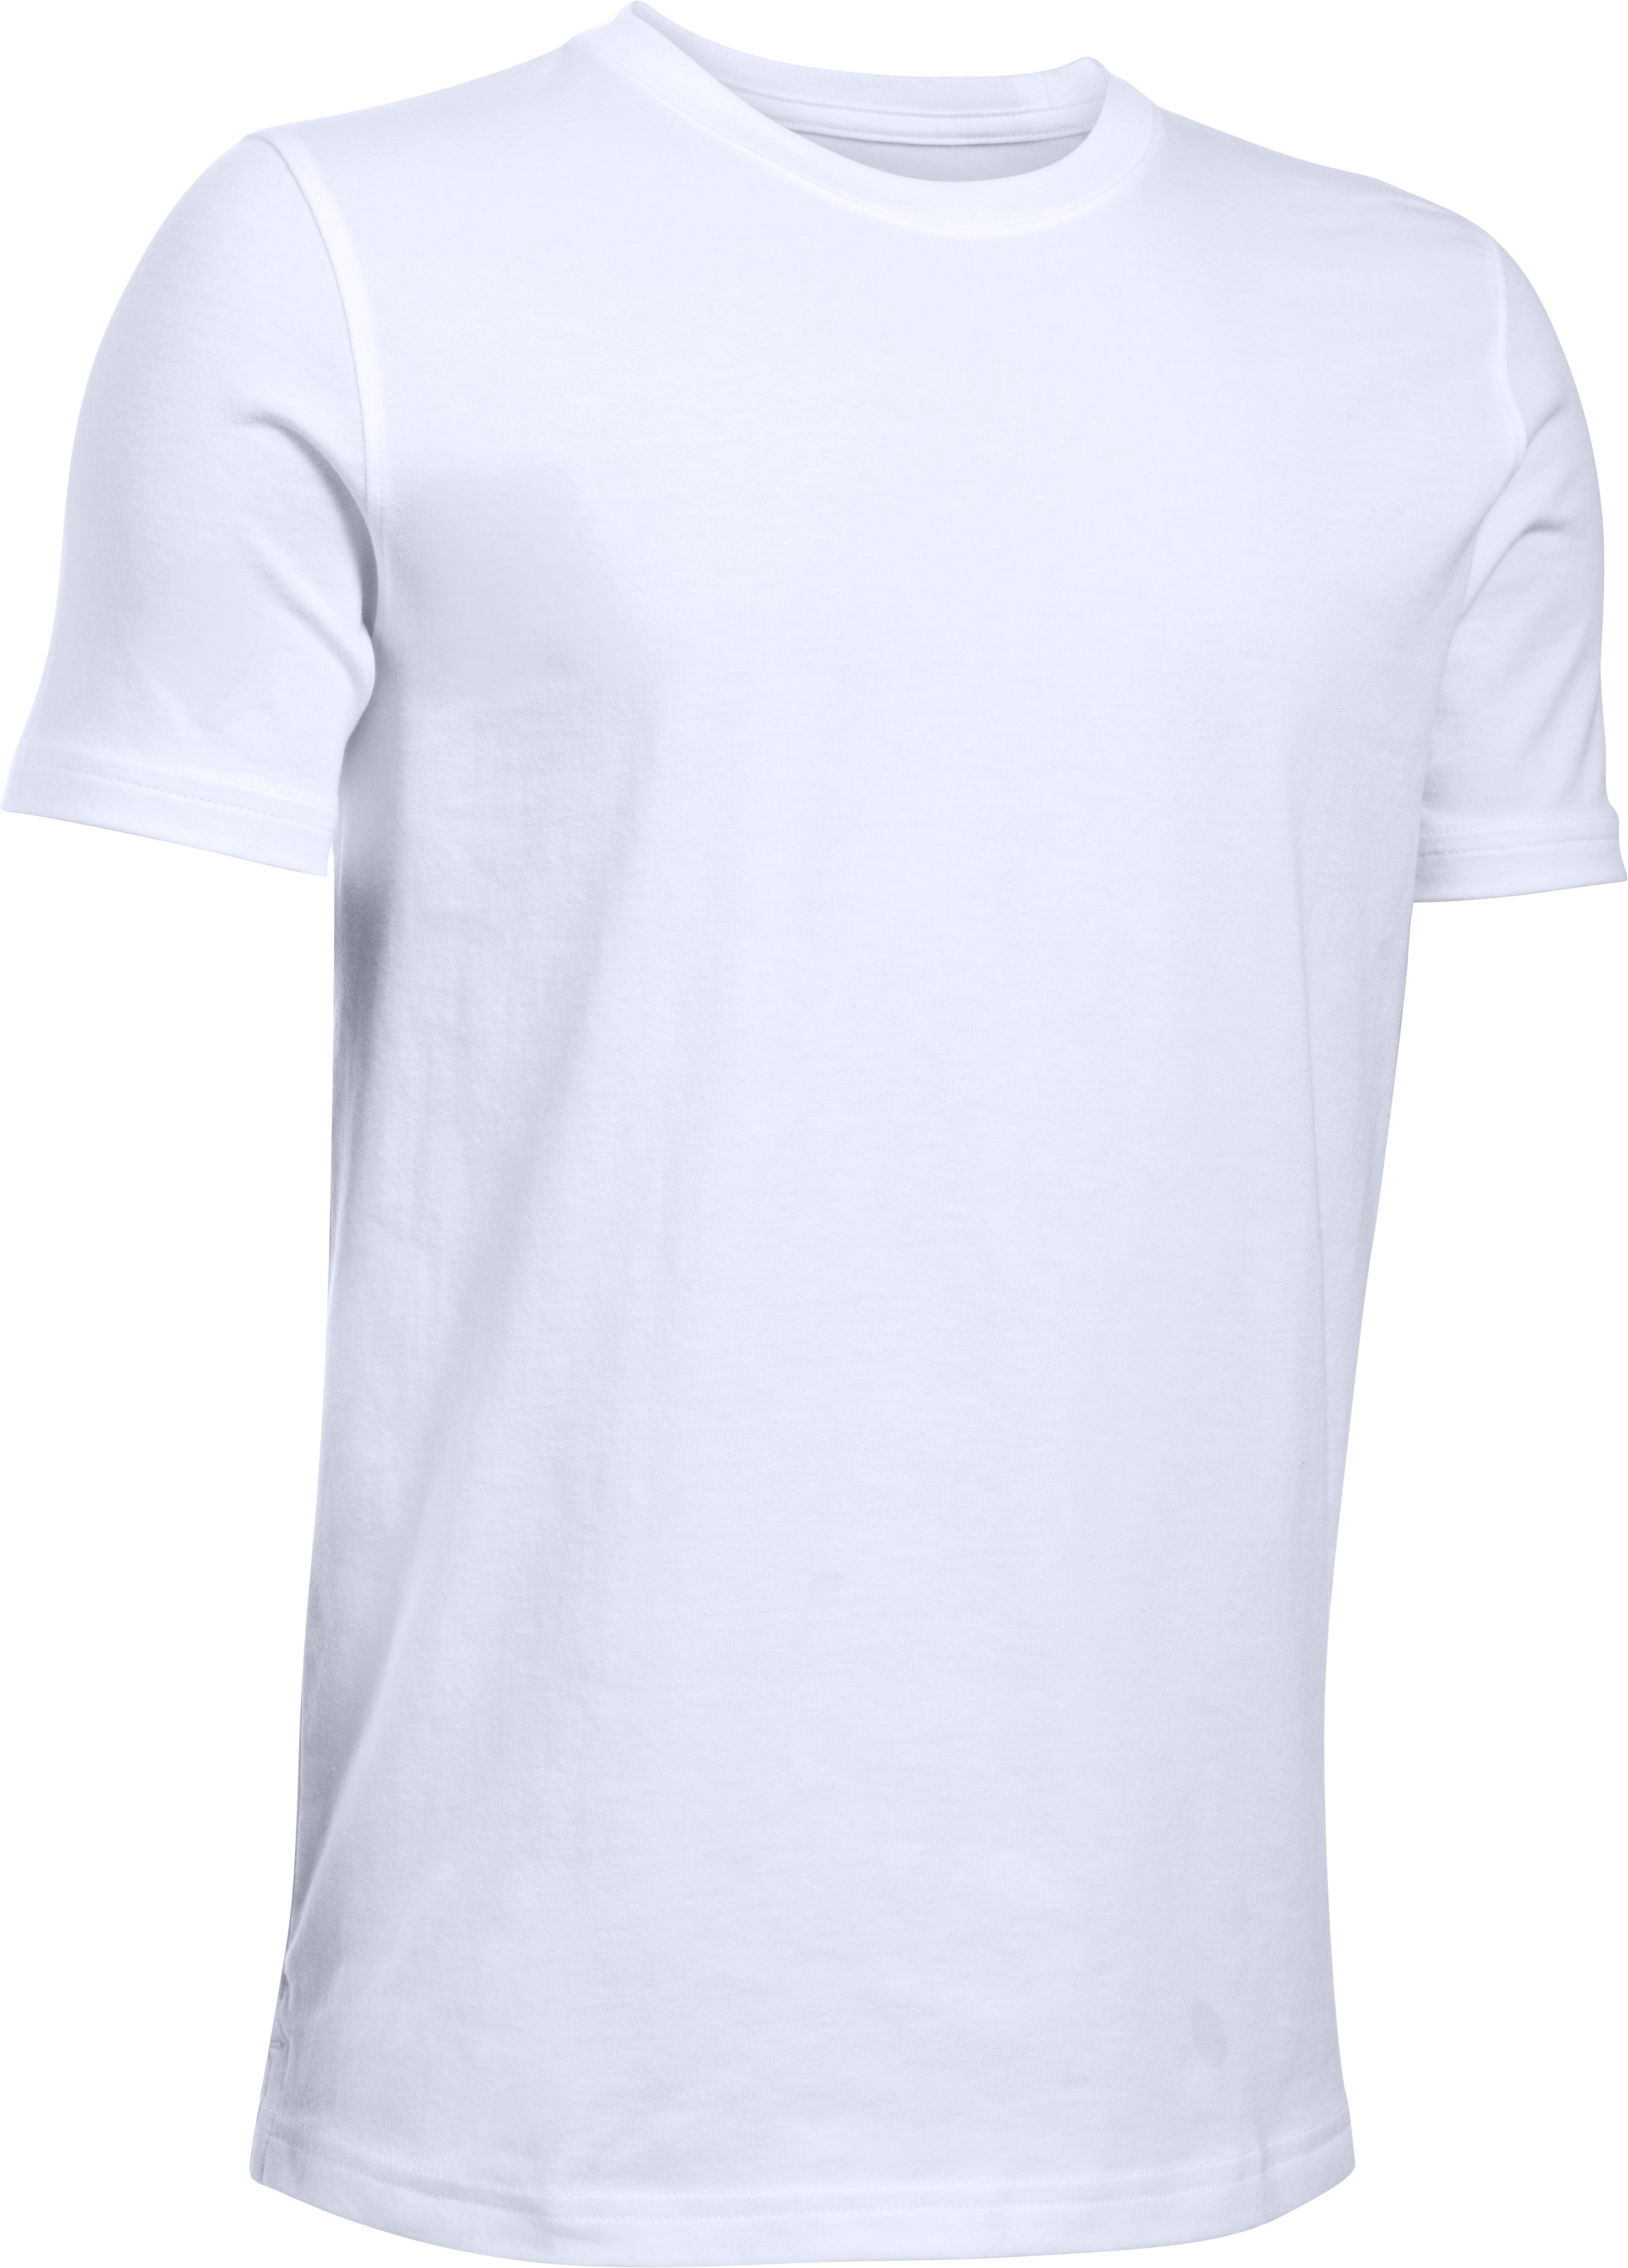 Boys' UA Extend The Game T-Shirt, White, zoomed image